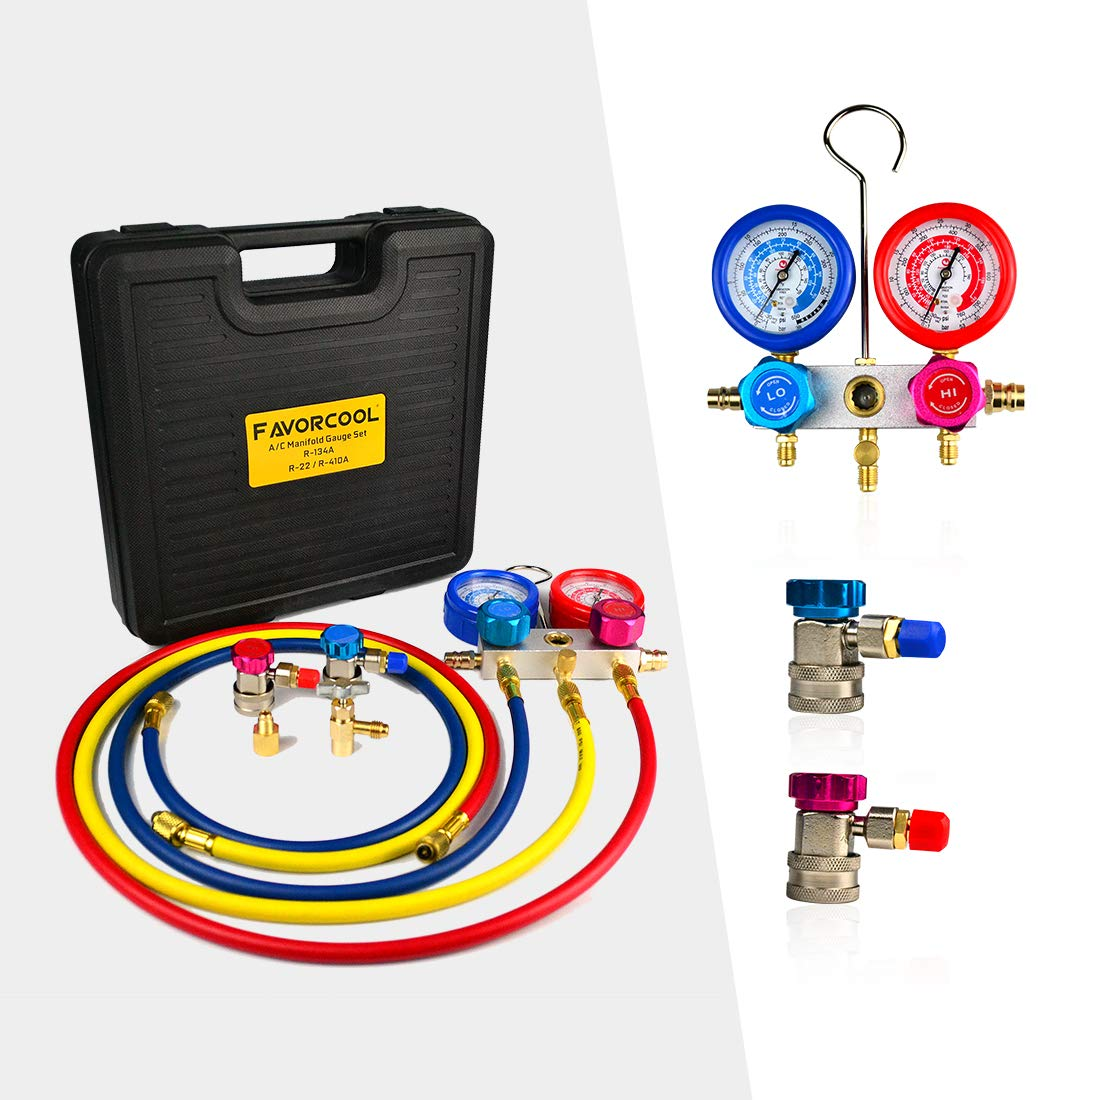 FAVORCOOL CT-136G 3-Way AC Diagnostic Manifold Gauge Set with Case for Freon Charging, fits R410A, R134A, R22 Refrigerants, Aluminum Body, Sight Glass & 1/2 Acme Fittings, Quick Couplers & Adapters